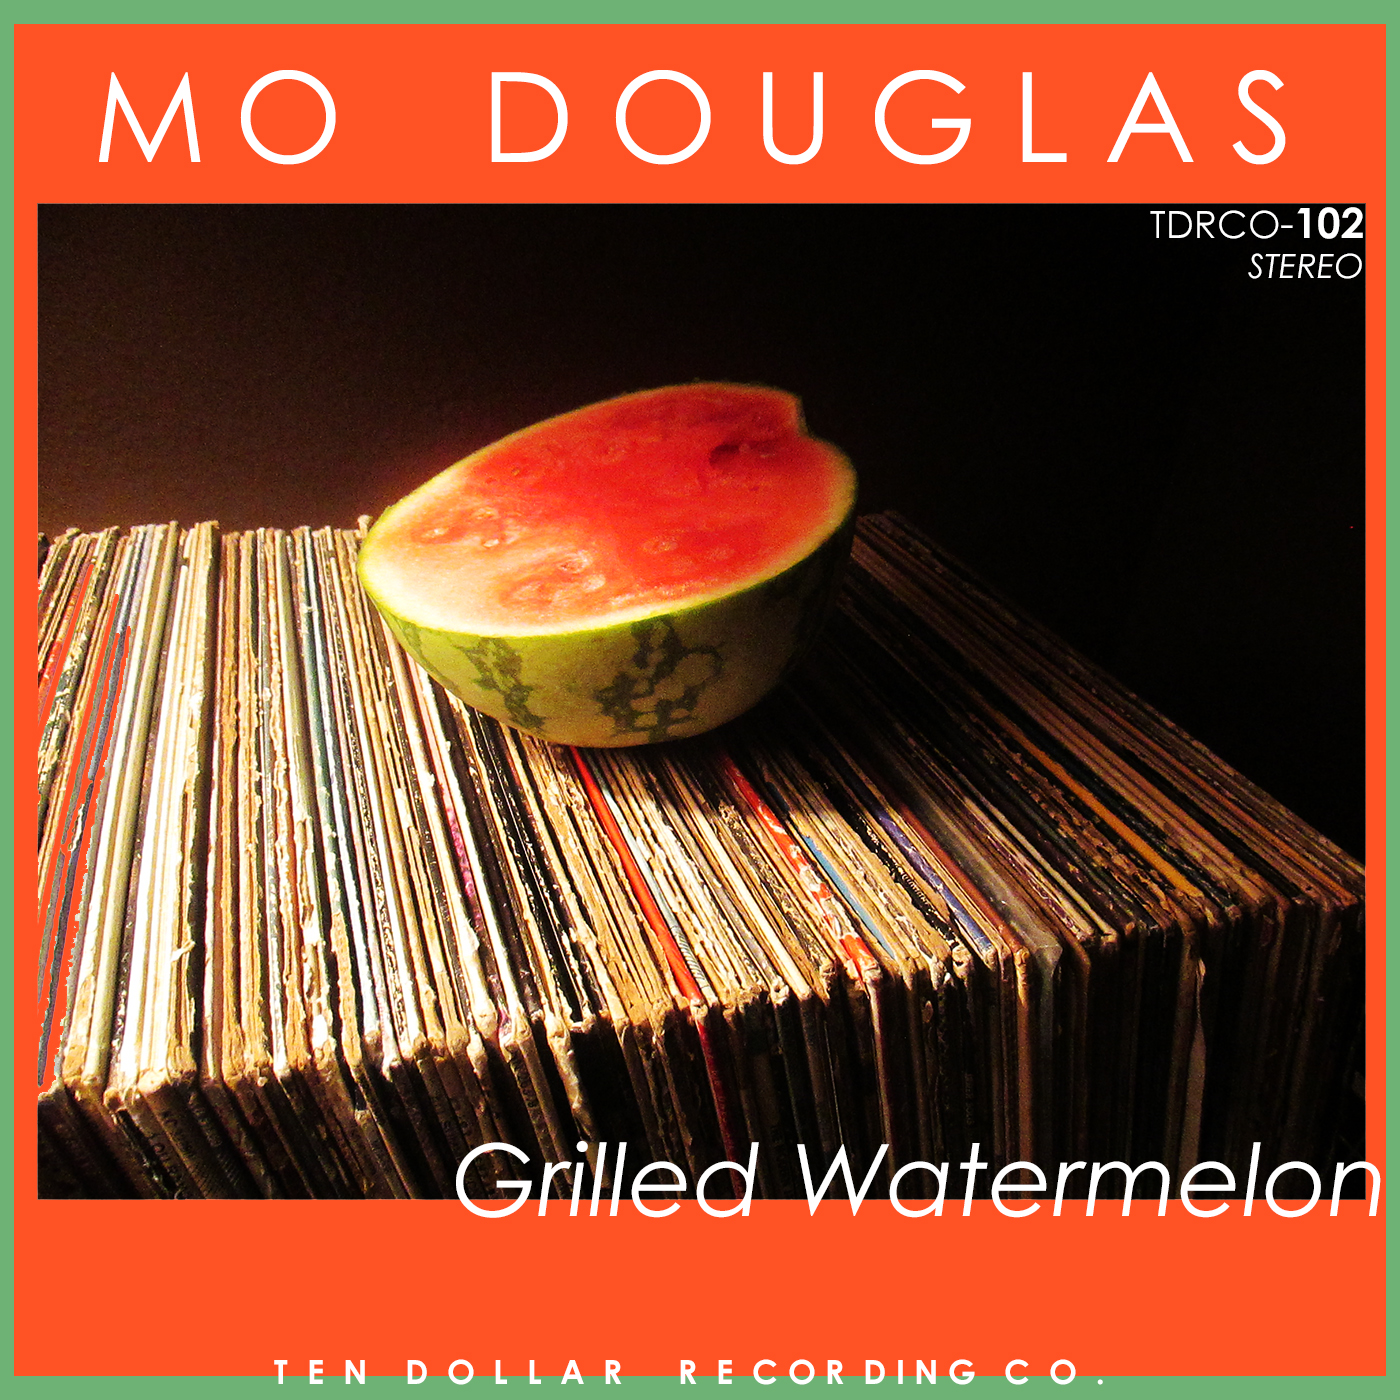 Mo Douglas - Grilled Watermelon (Single)